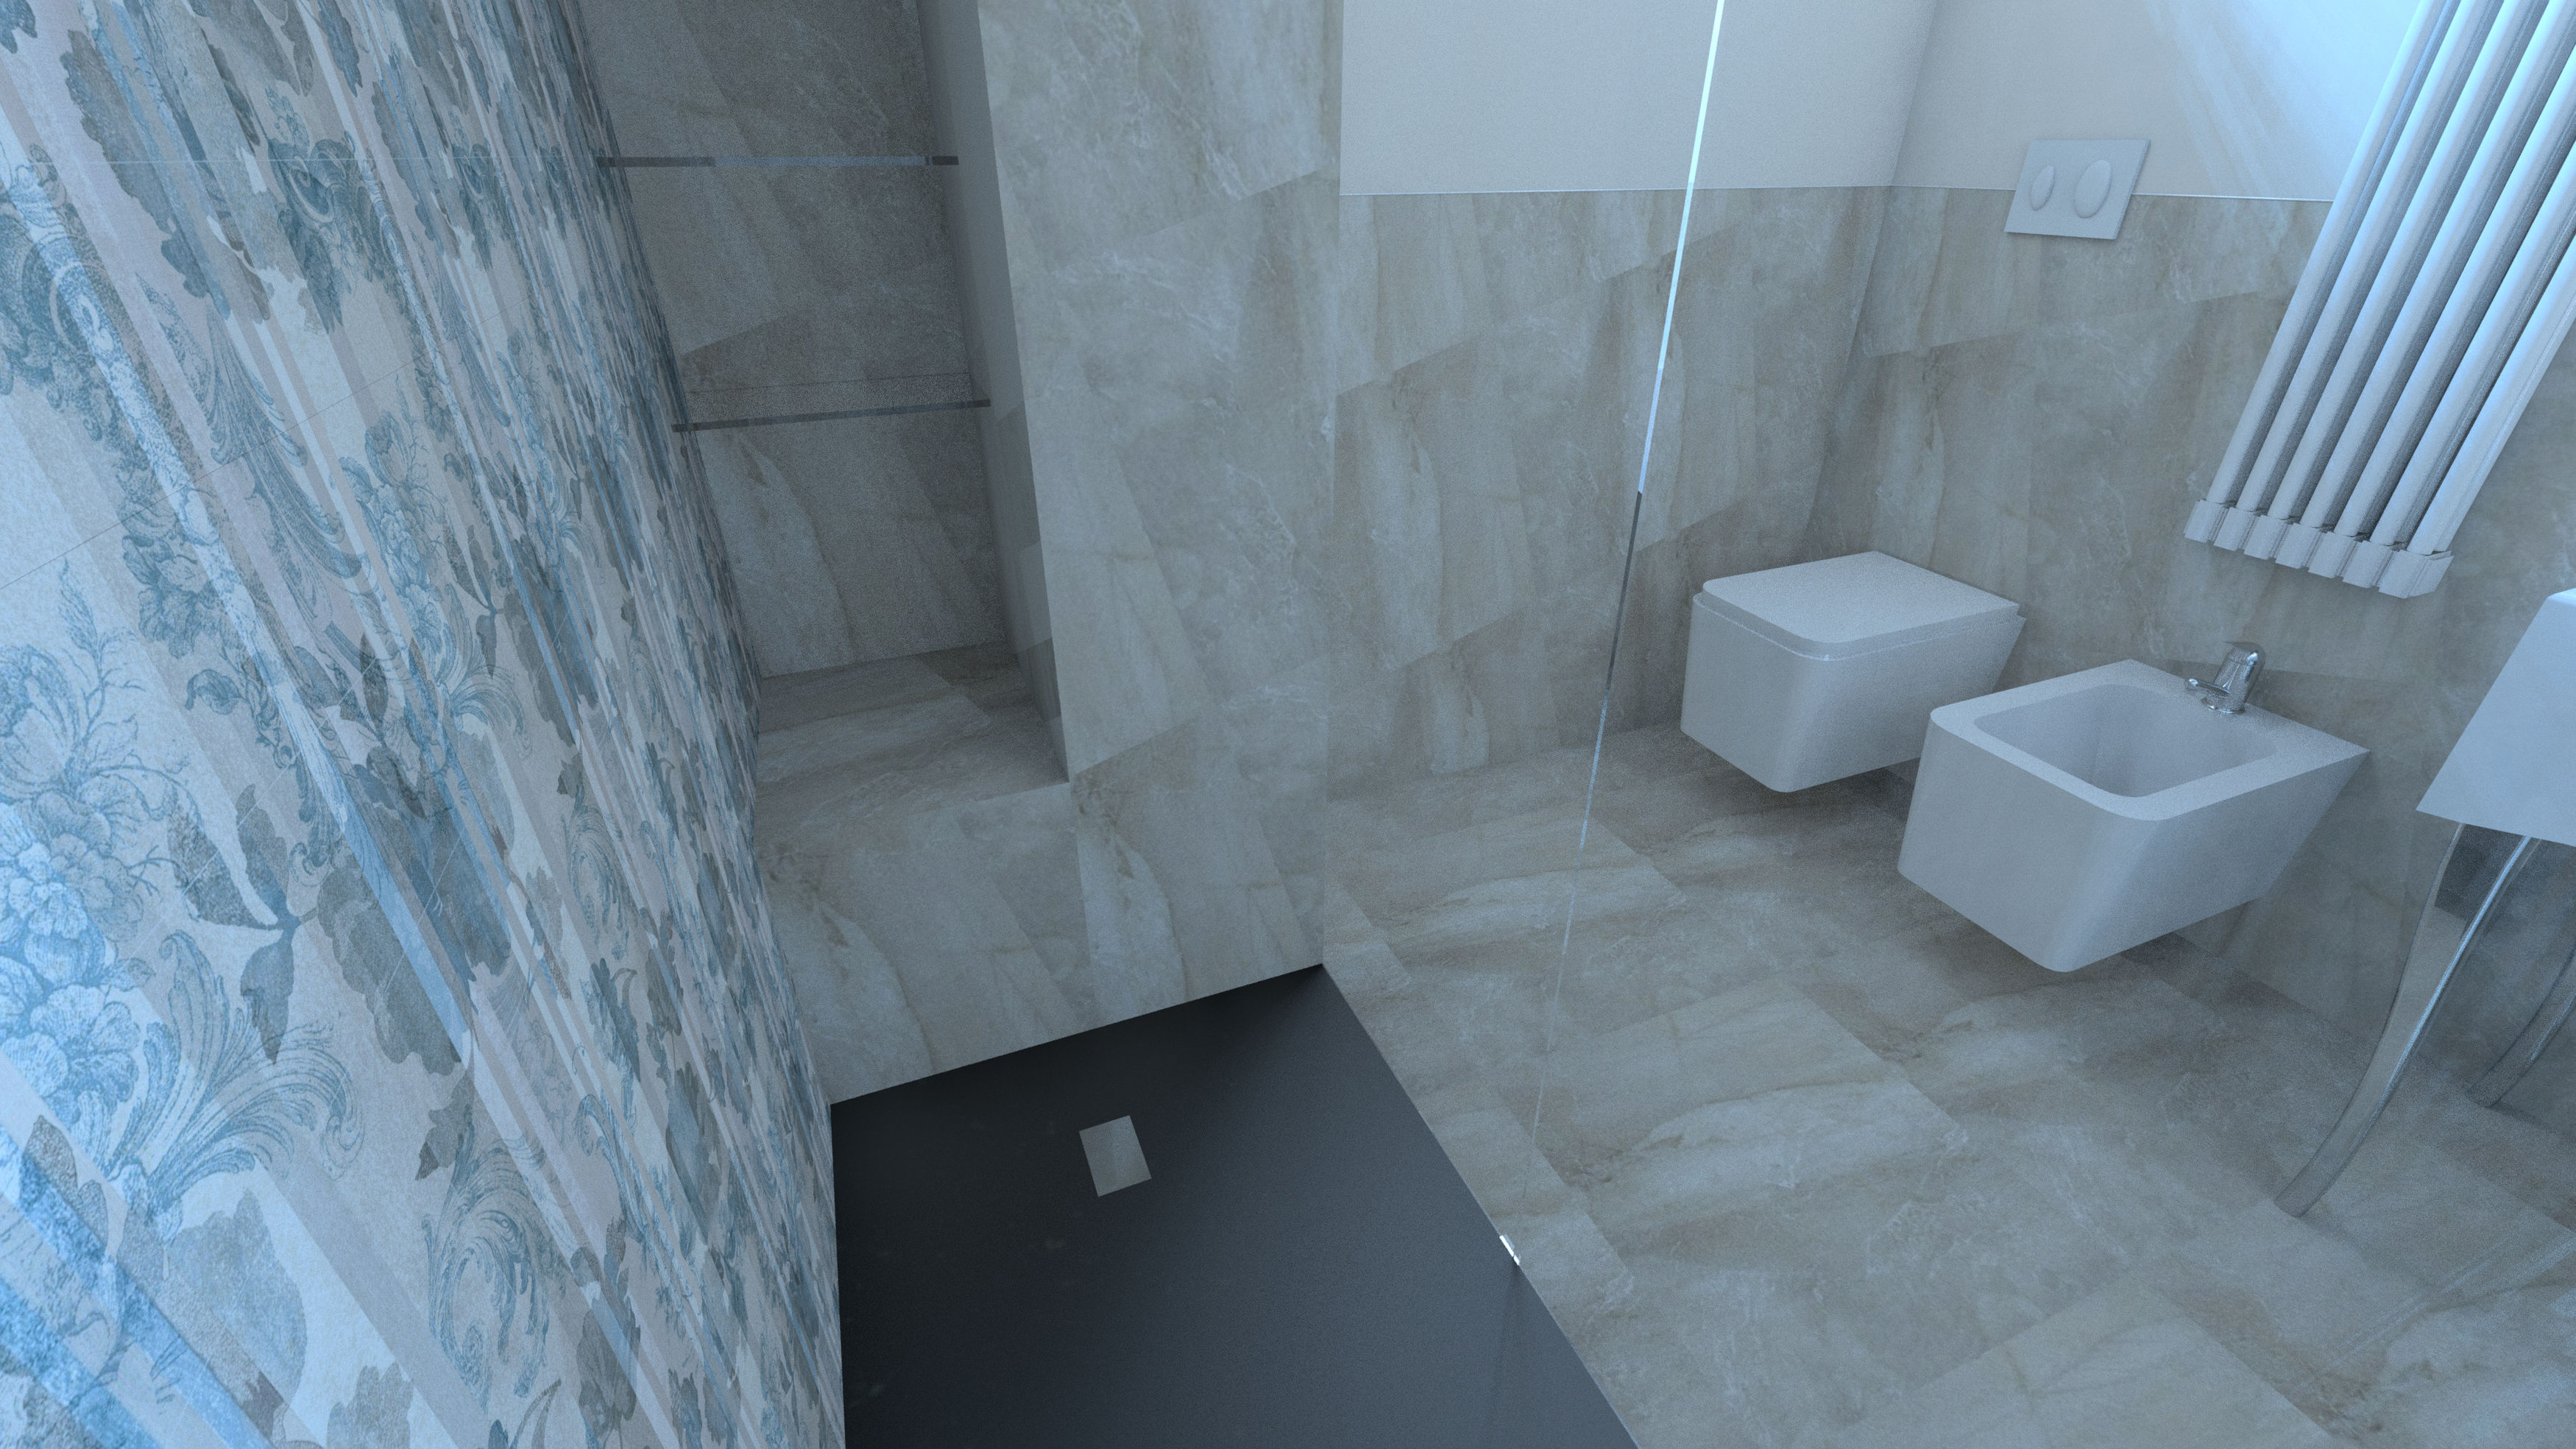 Mobile Bagno New York bagno genny|autodesk online gallery